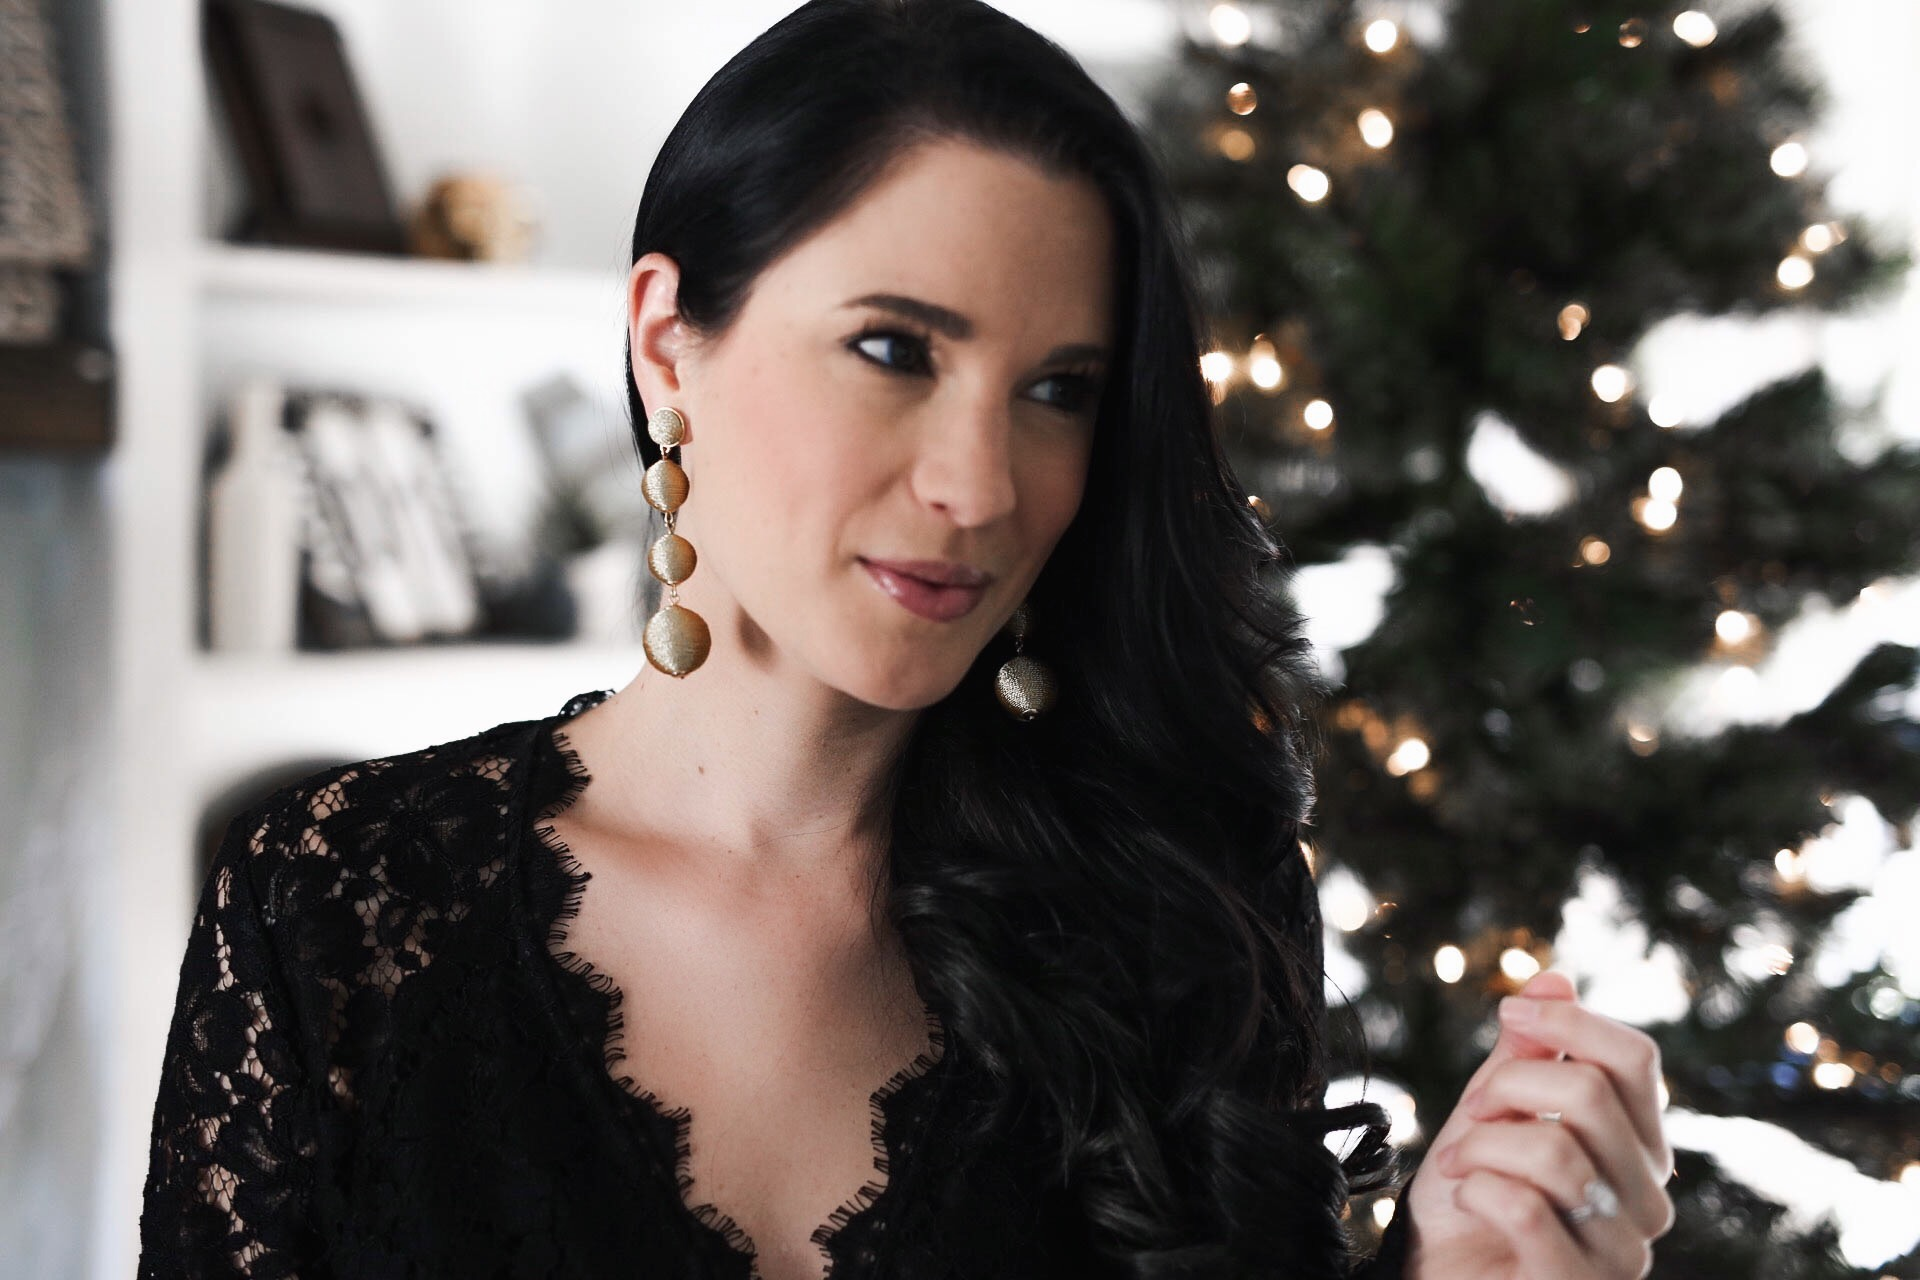 DTKAustin shares her go-to holiday jewelry with Baublebar. Save 25% with code GIFT25! | Baublebar Jewelry Best Sellers | Holiday Gift Guide | holiday jewelry | what to wear for the holidays | holiday accessories || Dressed to Kill #holidayjewelry #baublebar #holidayaccessories